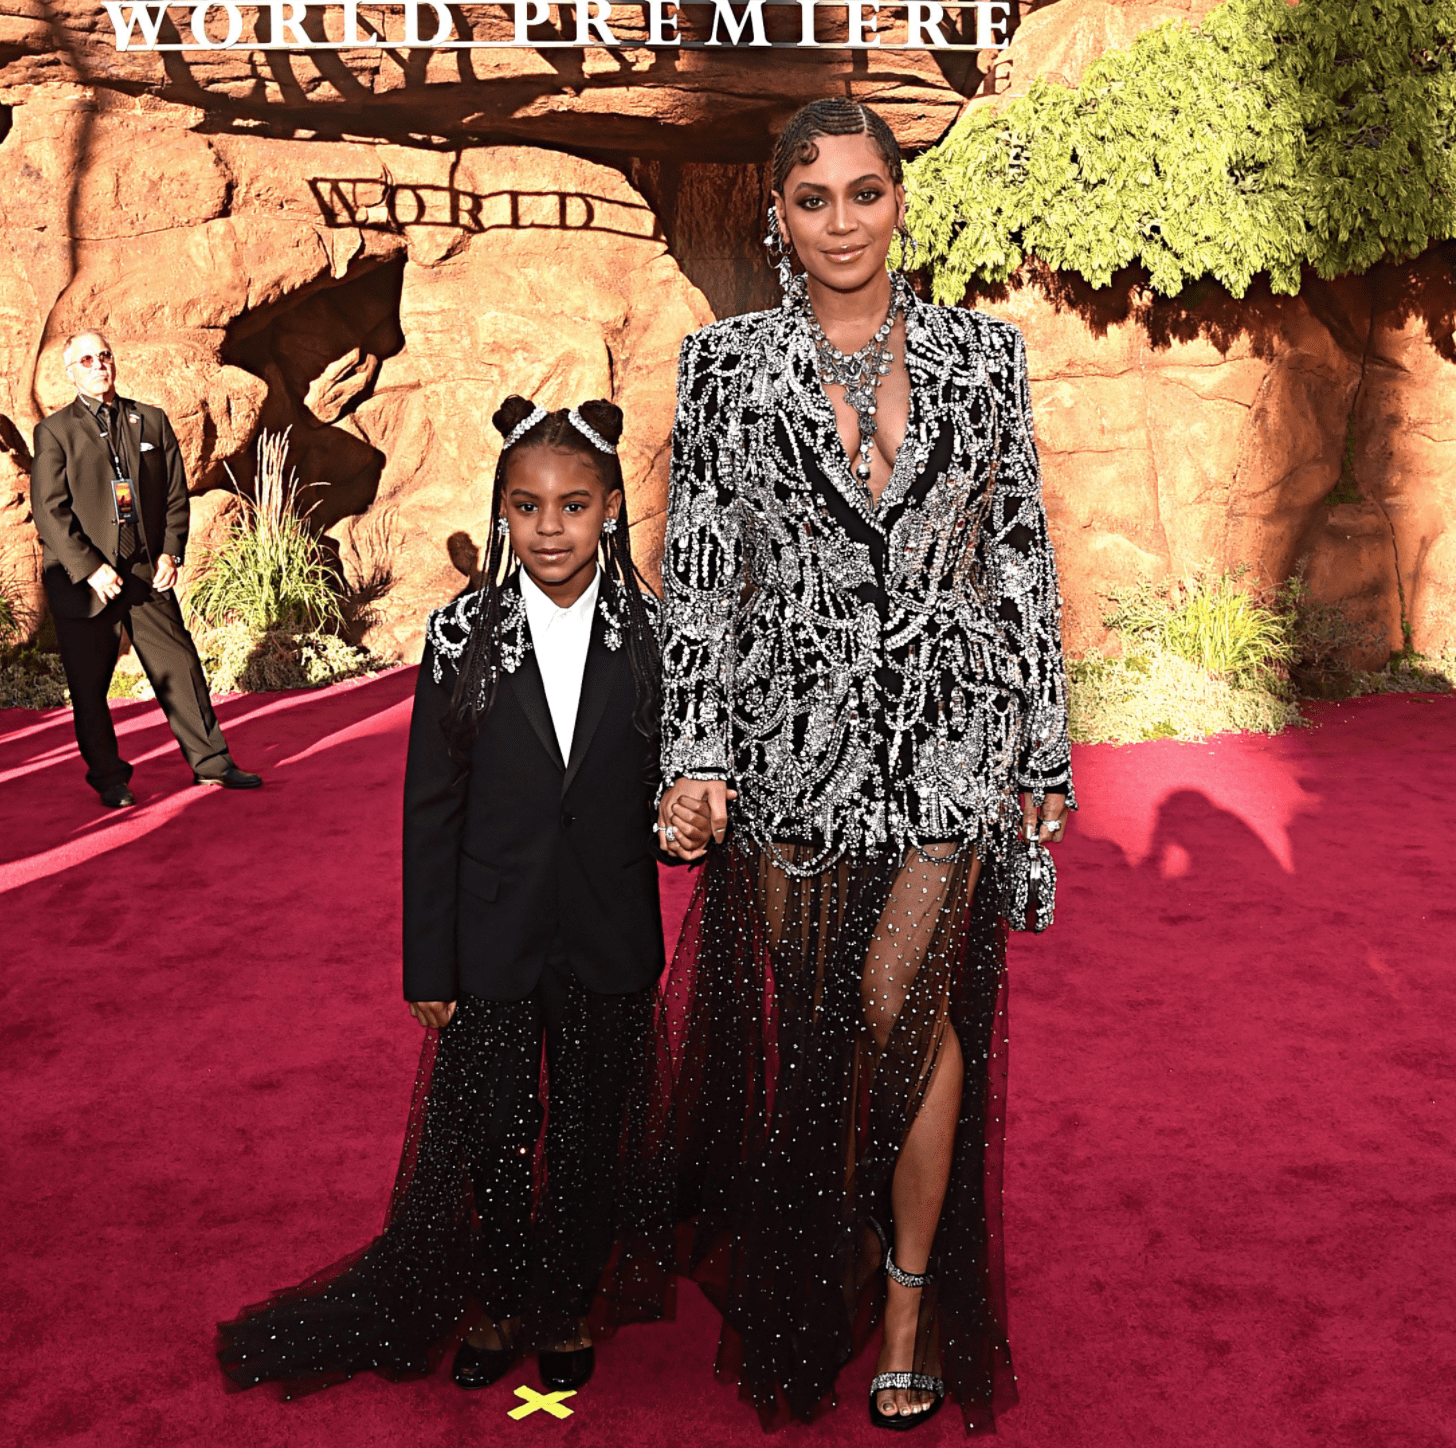 """Beyoncé and her daughter, Blue Ivy, at the premiere of """"The Lion King"""" in Hollywood, July, 2019. 